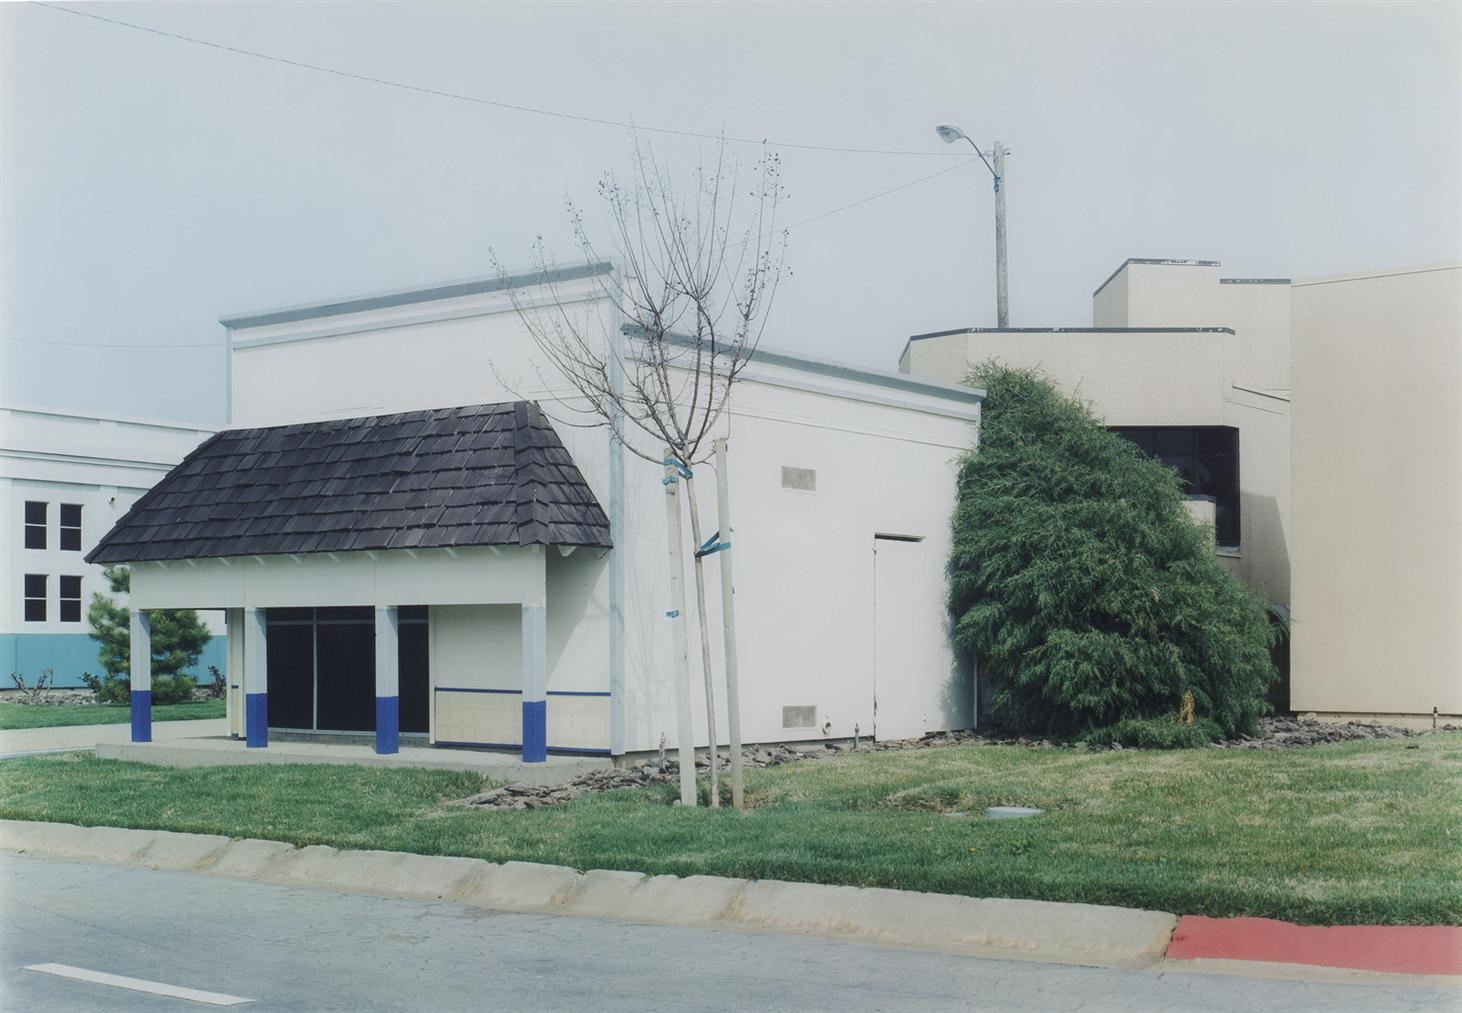 Miles Coolidge - Commercial Buildings (Rear View), From Safetyville, 1994-1996-